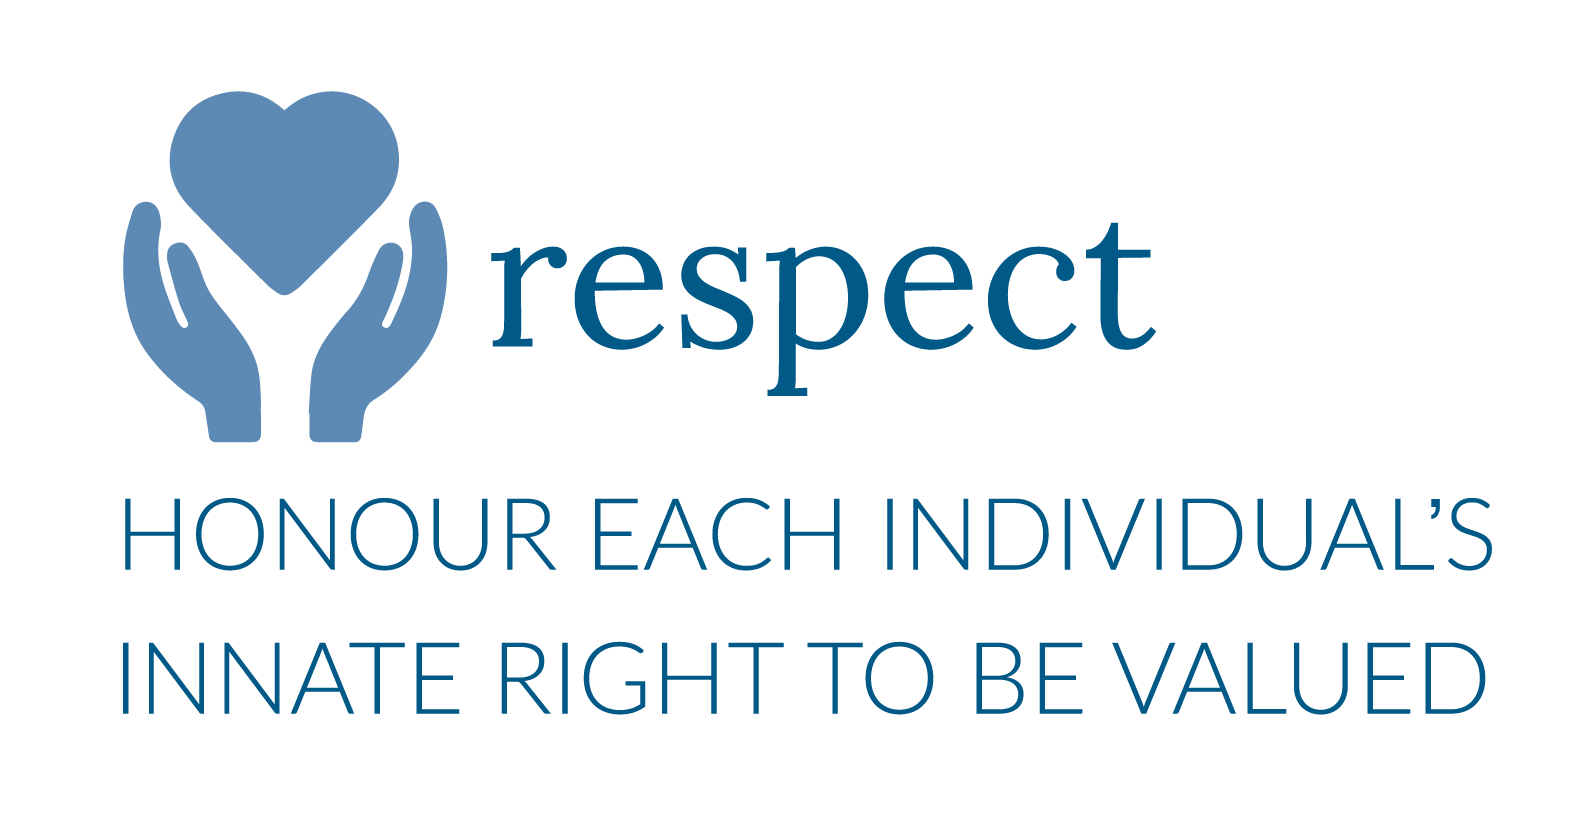 Values_Respect_Icon.png